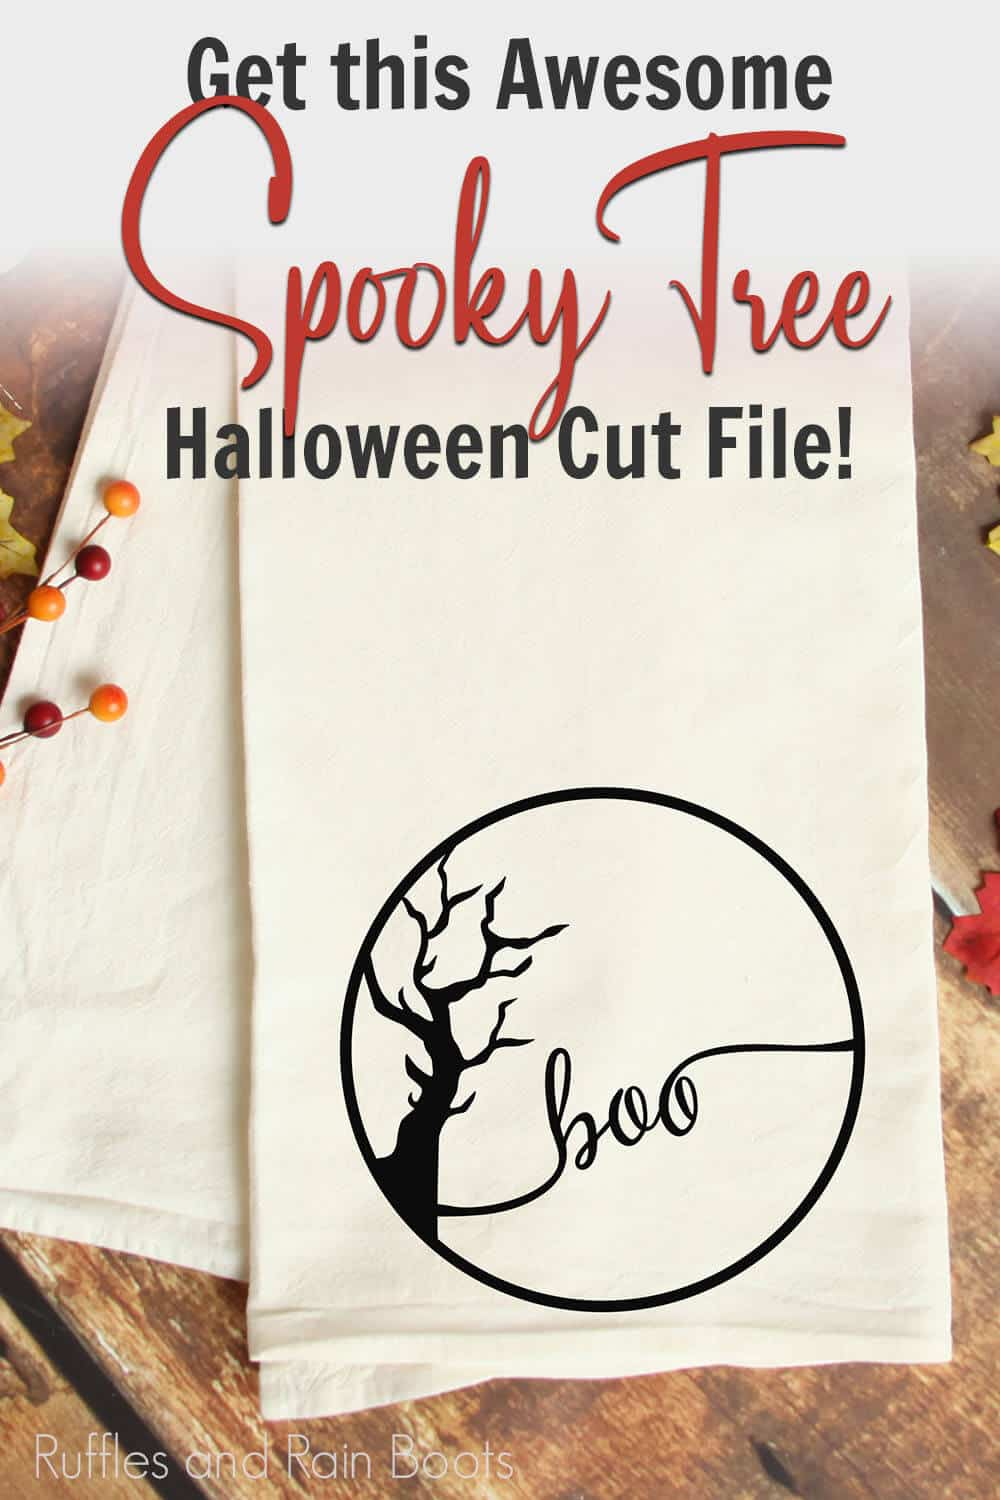 easy weed halloween cut file for ciricut or silhouette with text which reads get this awesome spooky tree halloween cut file!